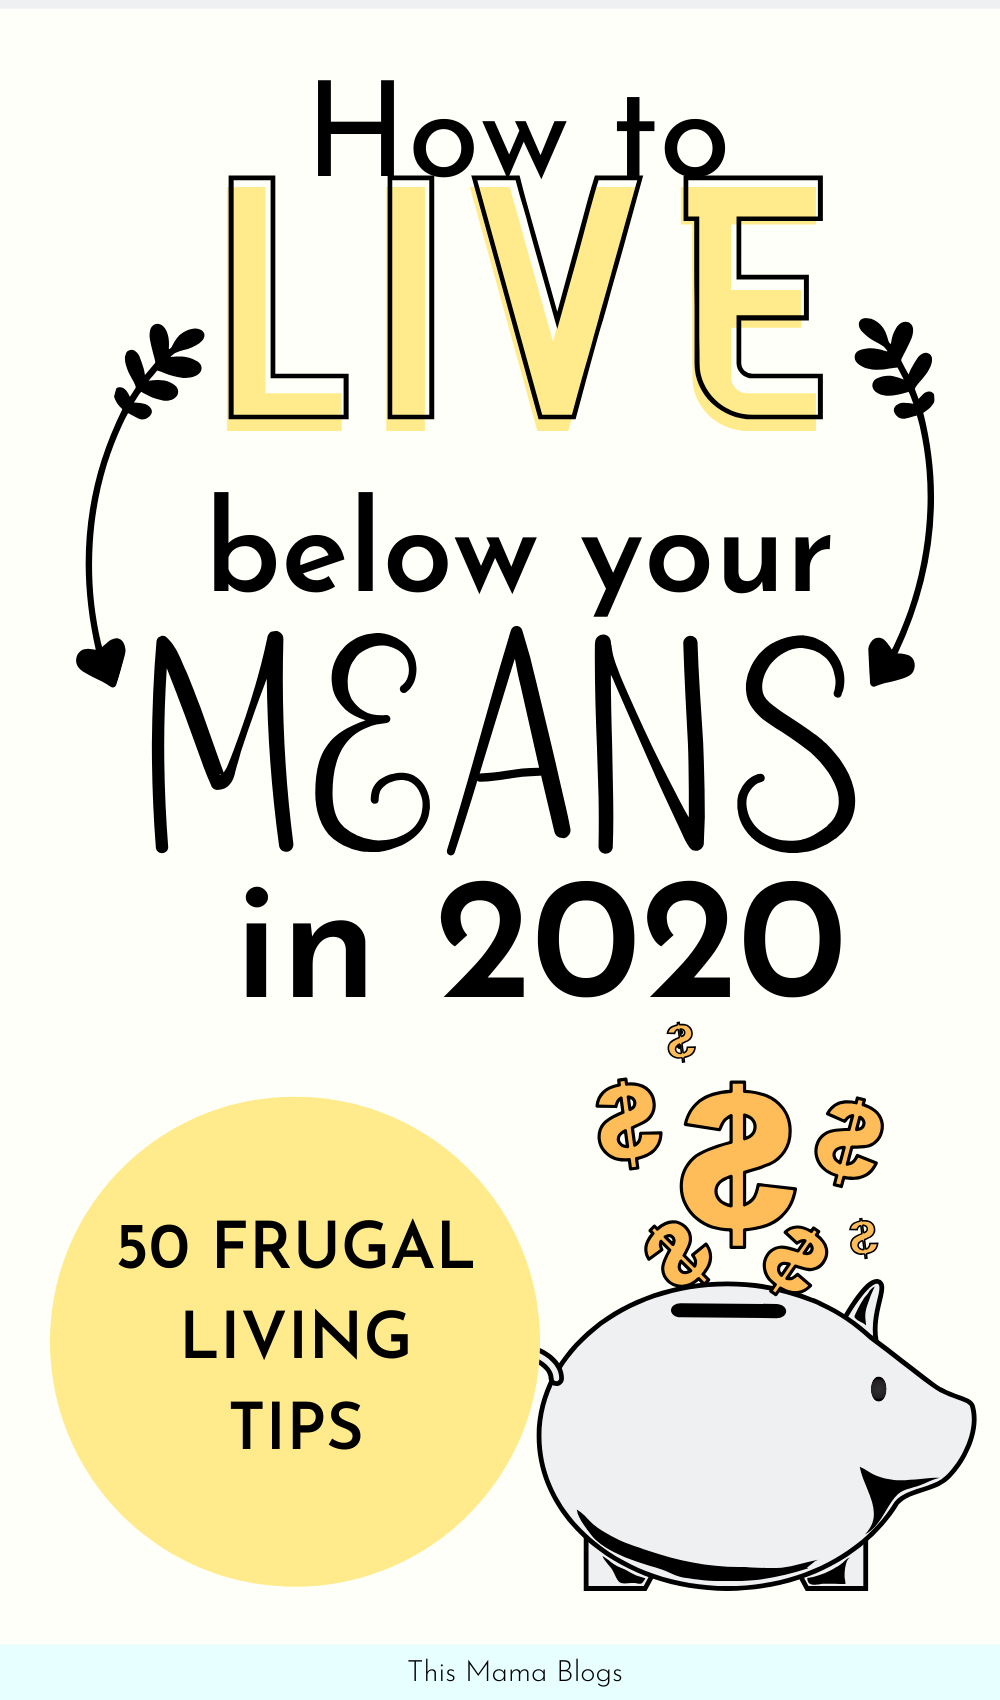 Want to know how to live more frugally and save money? Learn to live well for less with these best frugal-living tips  and save  money on everything from groceries to utilities and clothing. Learn our best tips to help you live a frugal lifestyle while enjoying life! #frugalliving #savemoney